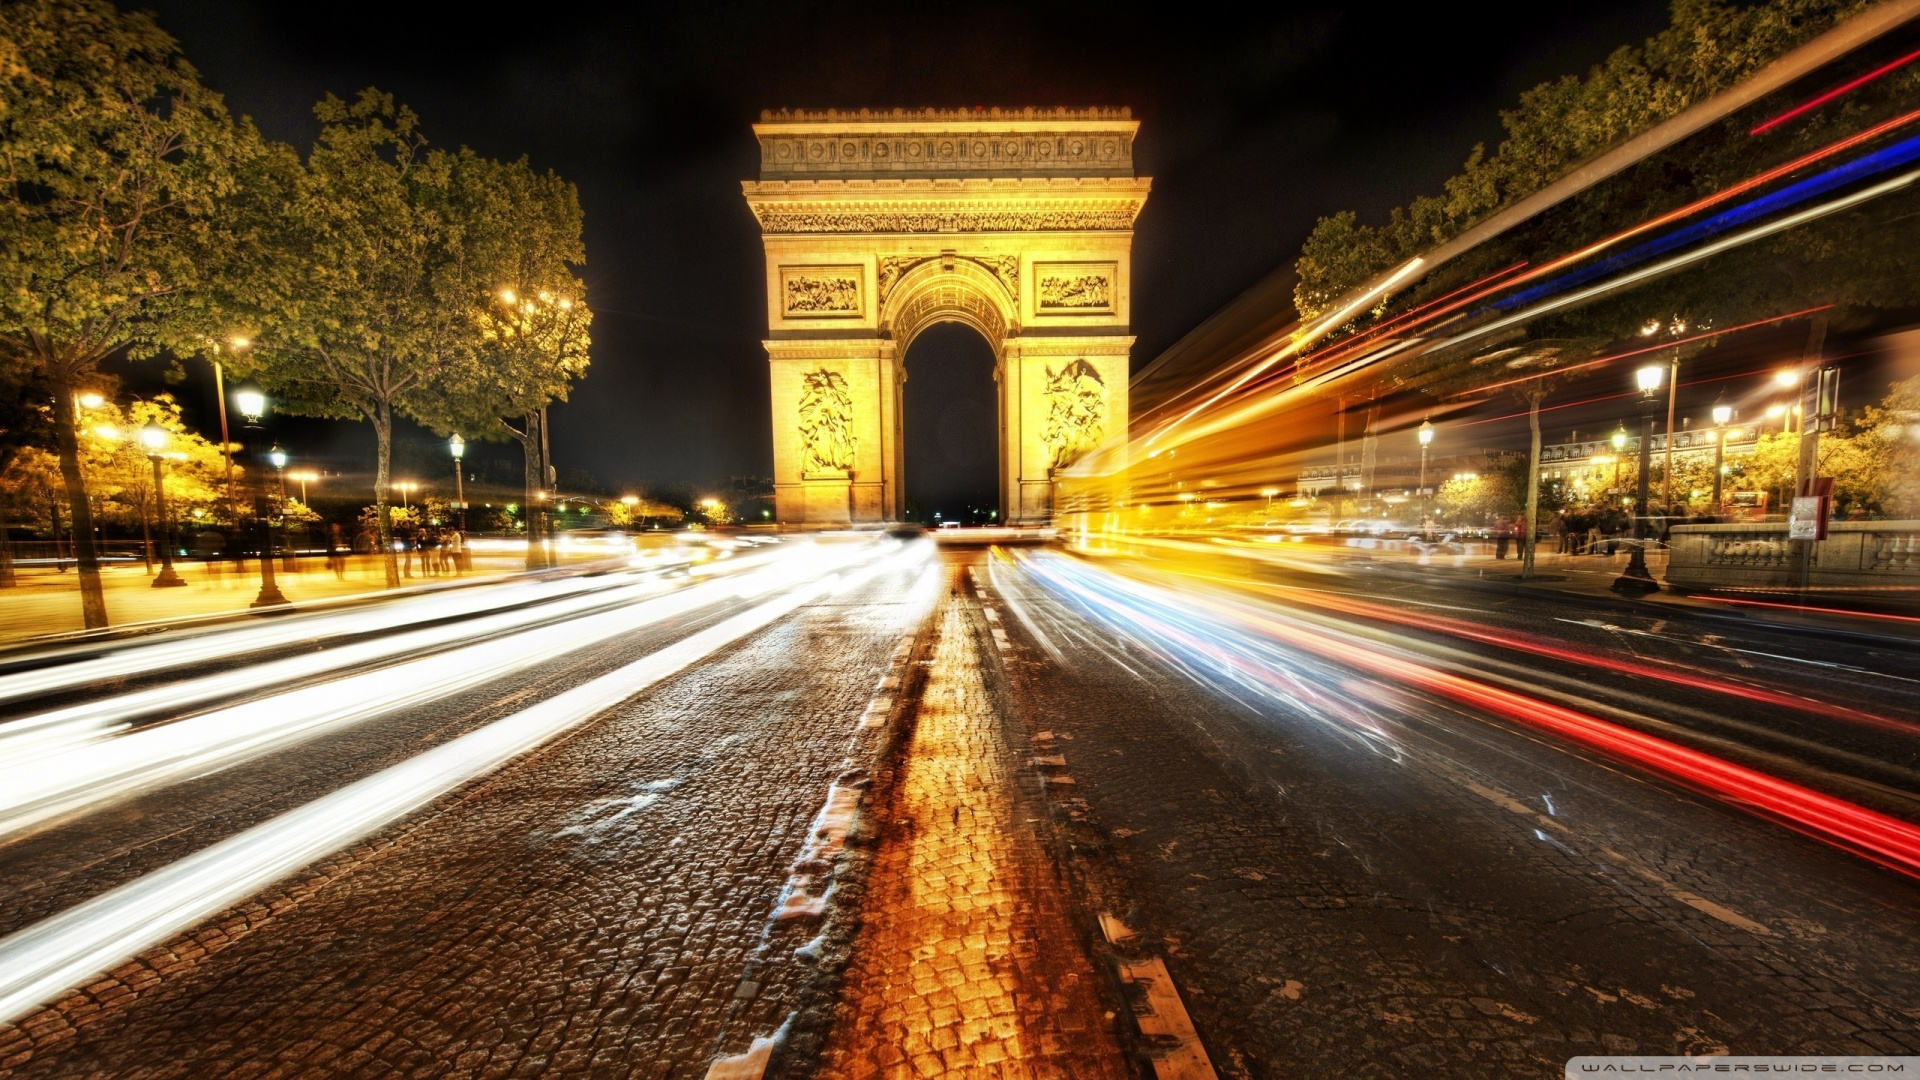 ... arc-de-triomphe-at-night-long-exposure-road-